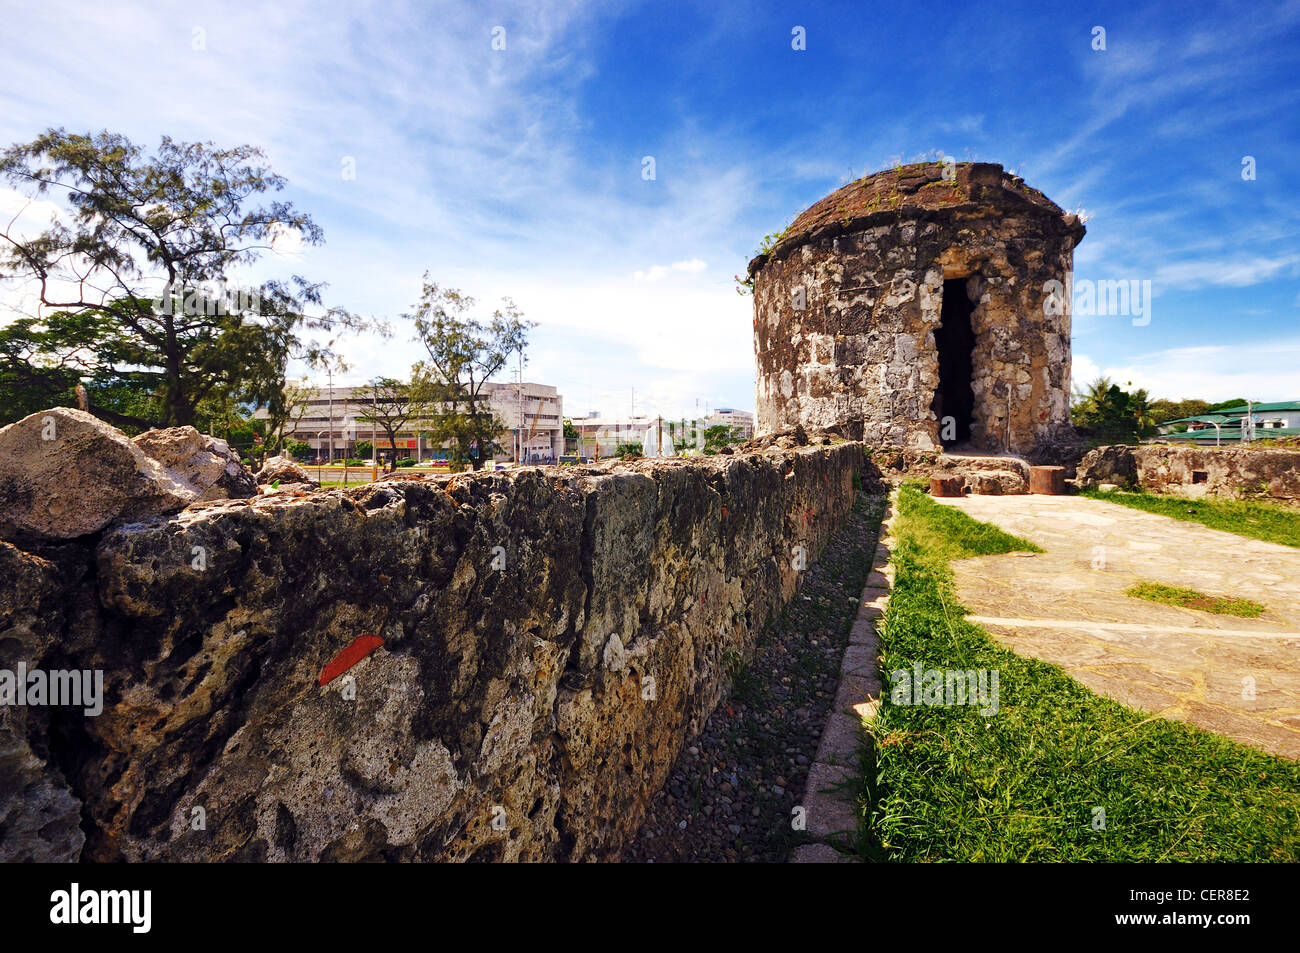 One of the watchtowers at Fort San Pedro in Cebu, Philippines - Stock Image